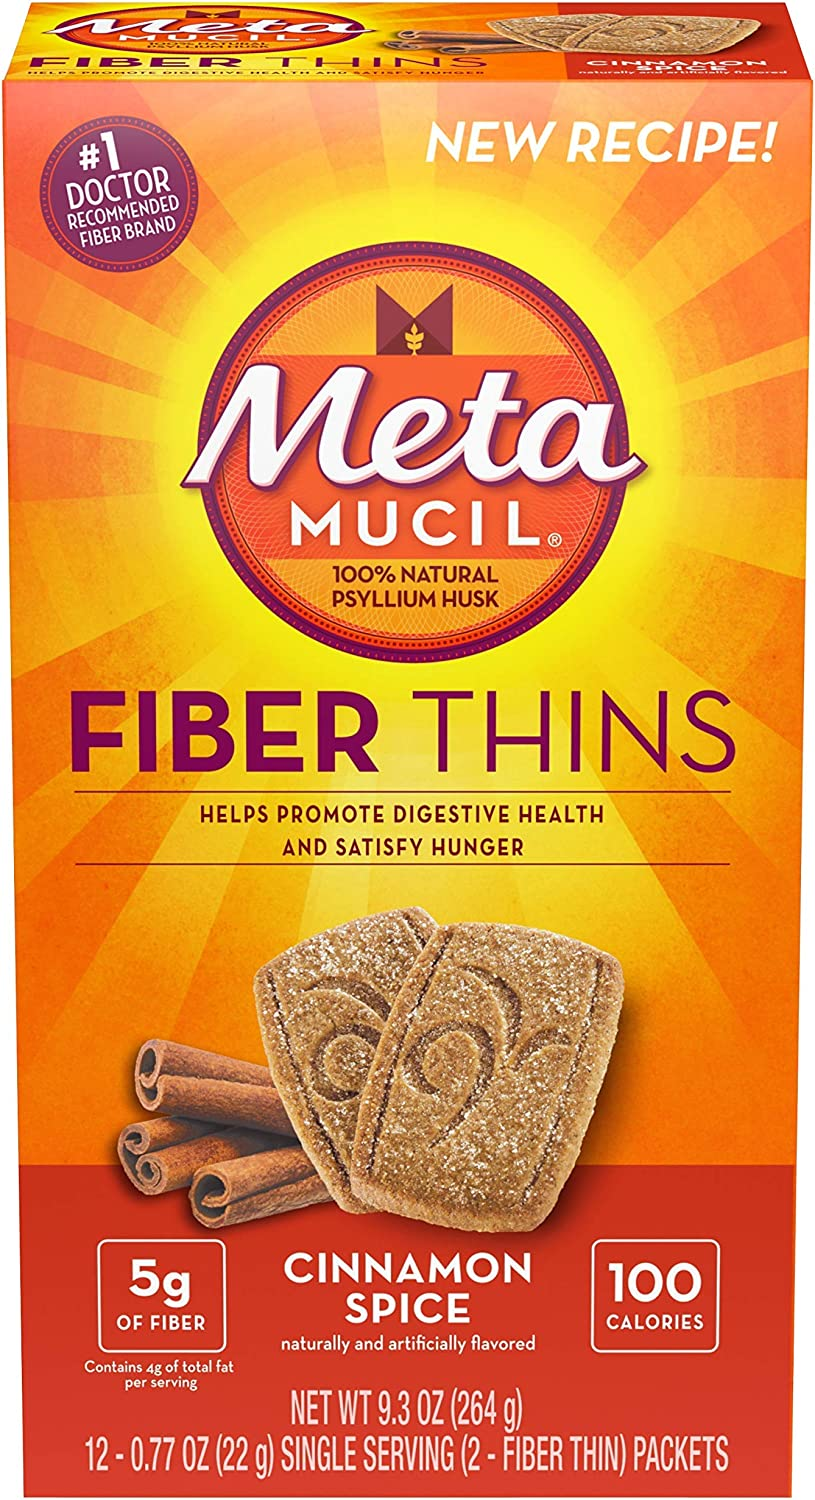 Metamucil Fiber Thins Cinnamon Spice - 12ct